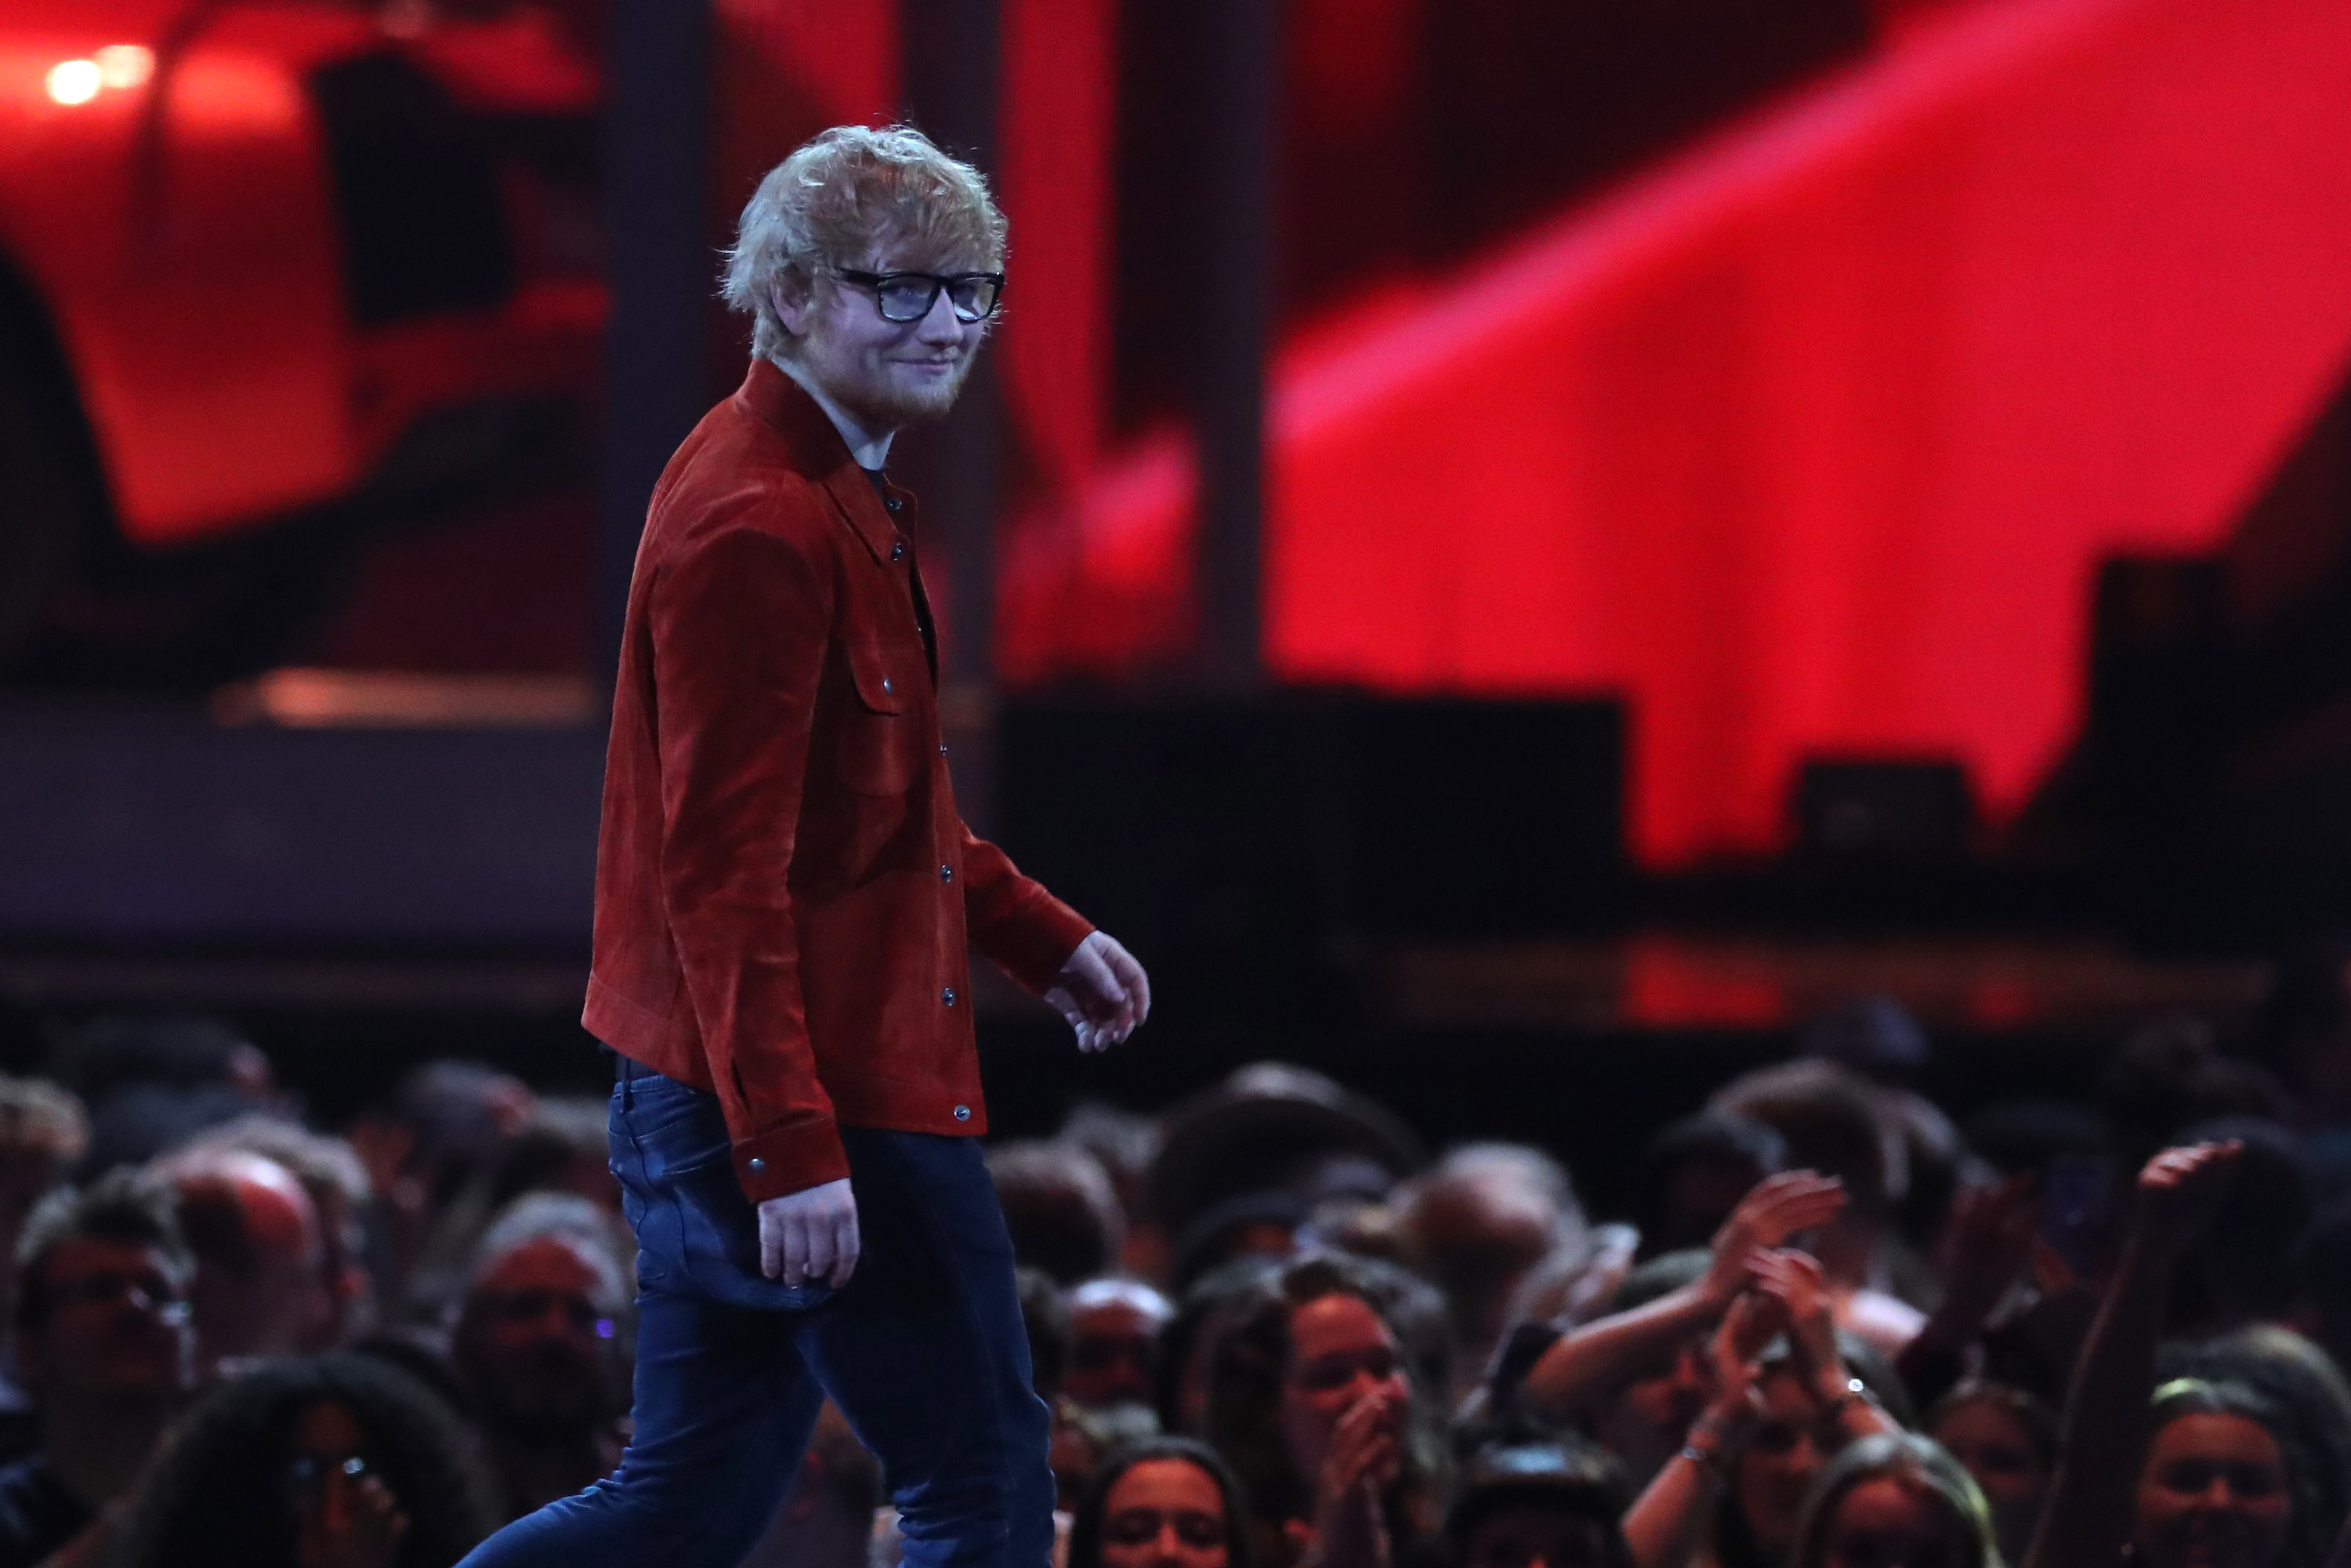 Ed walks across a stage in a front of an audience at an award show